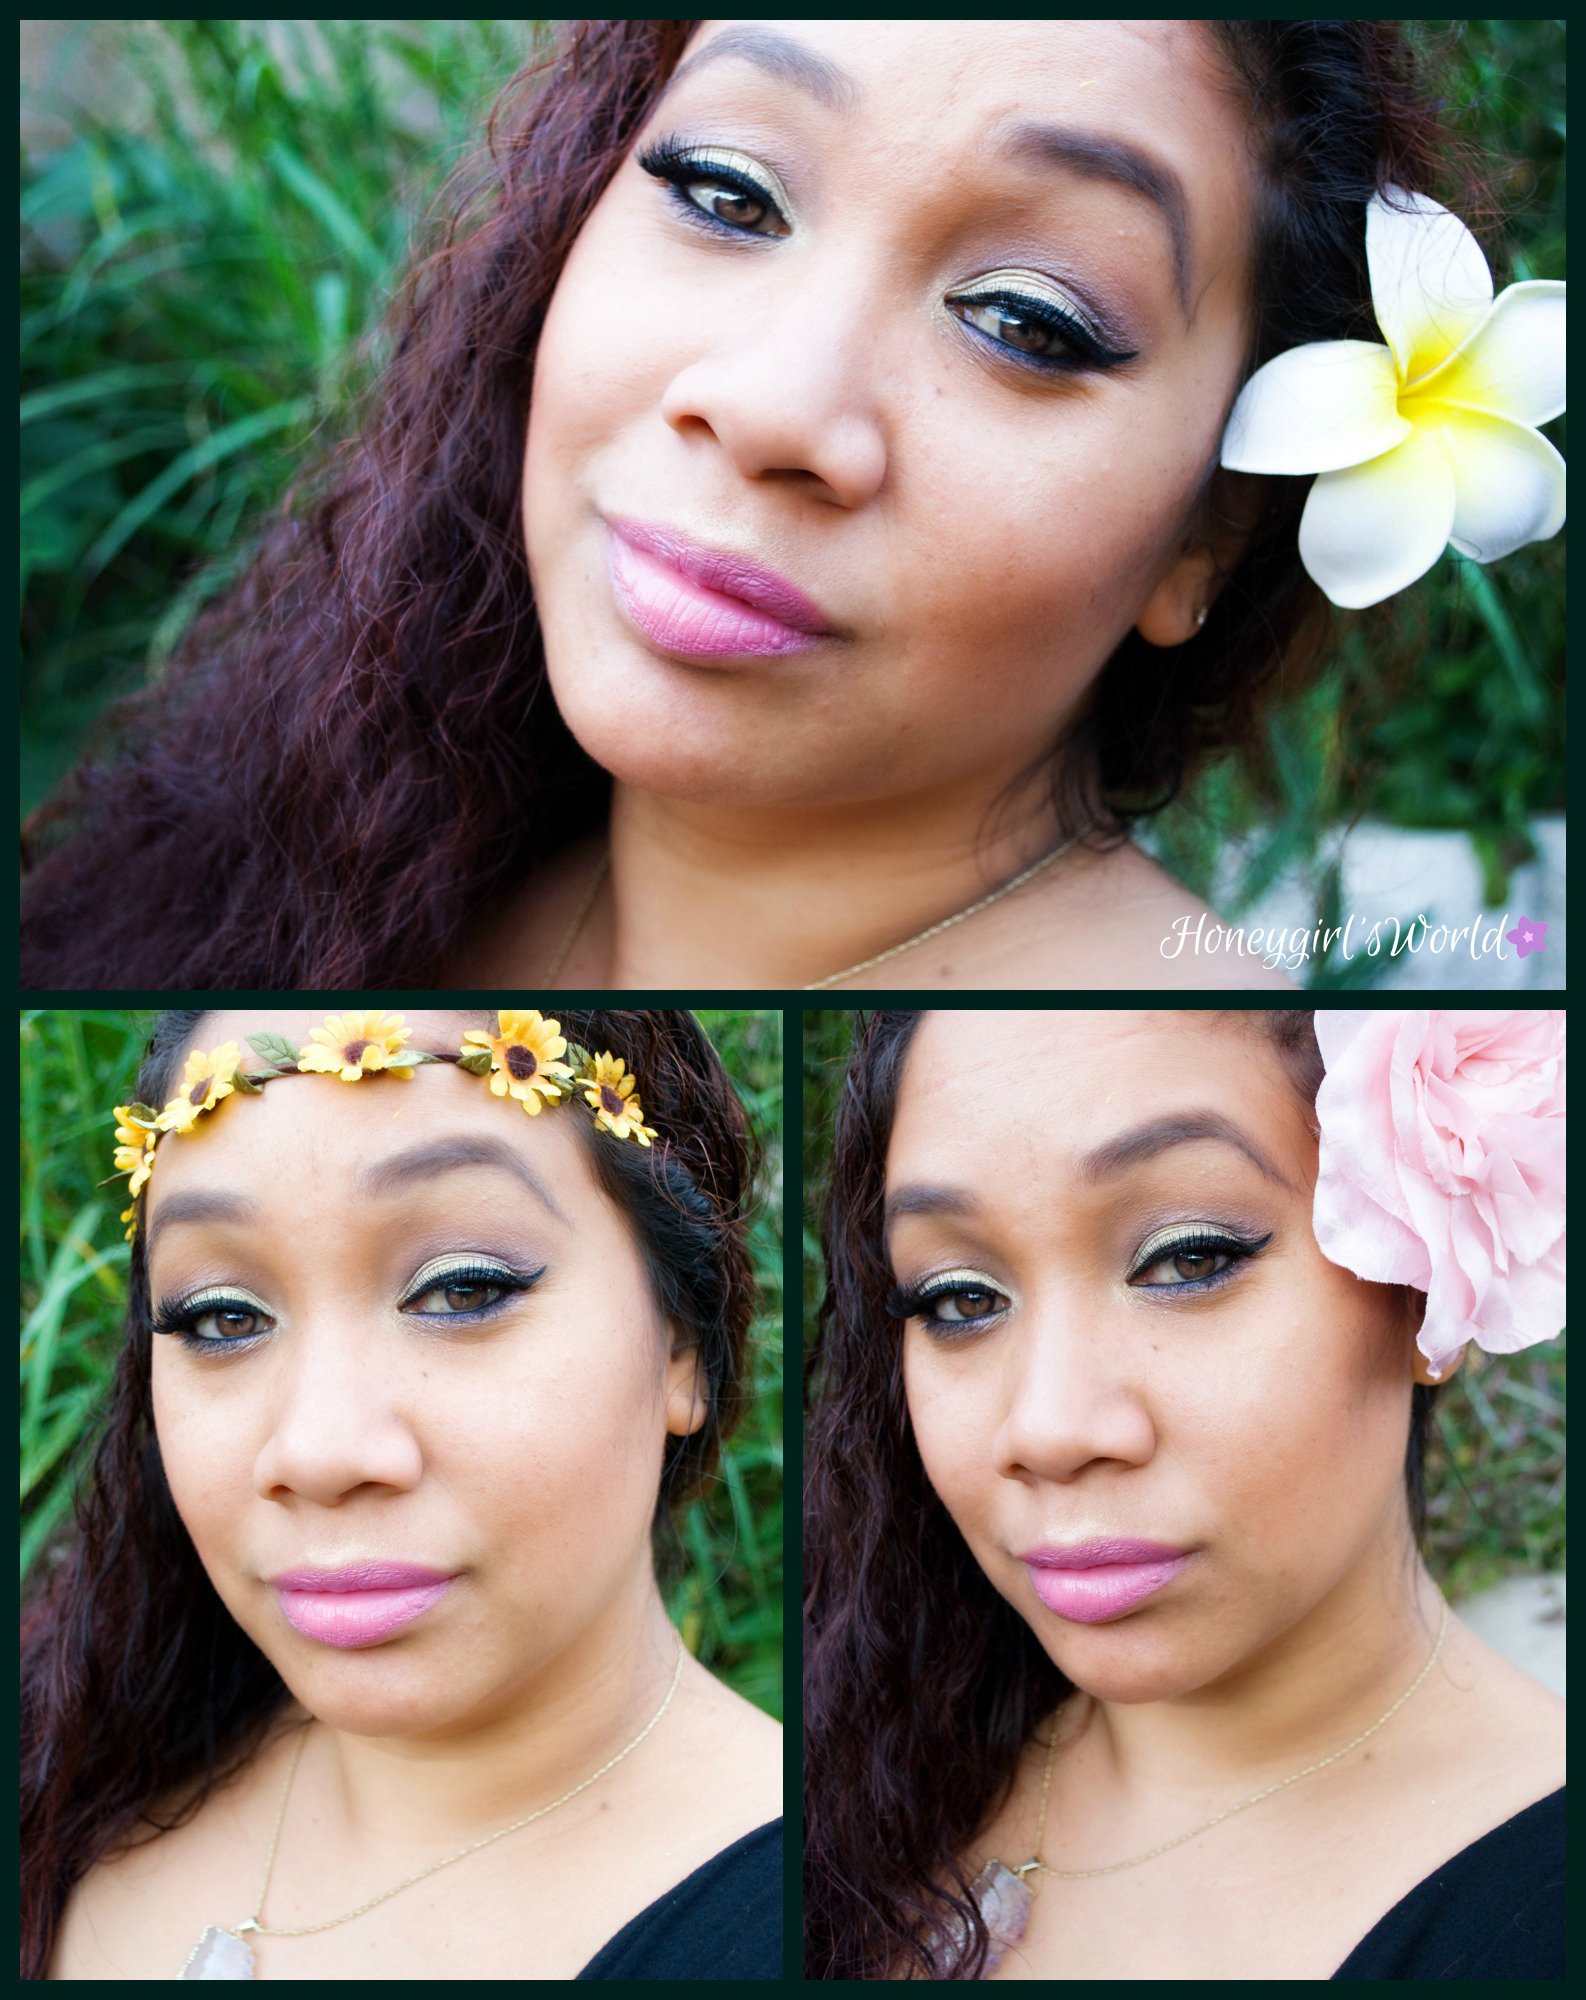 The Secret Garden inspired Makeup using Ipsy Glam bag